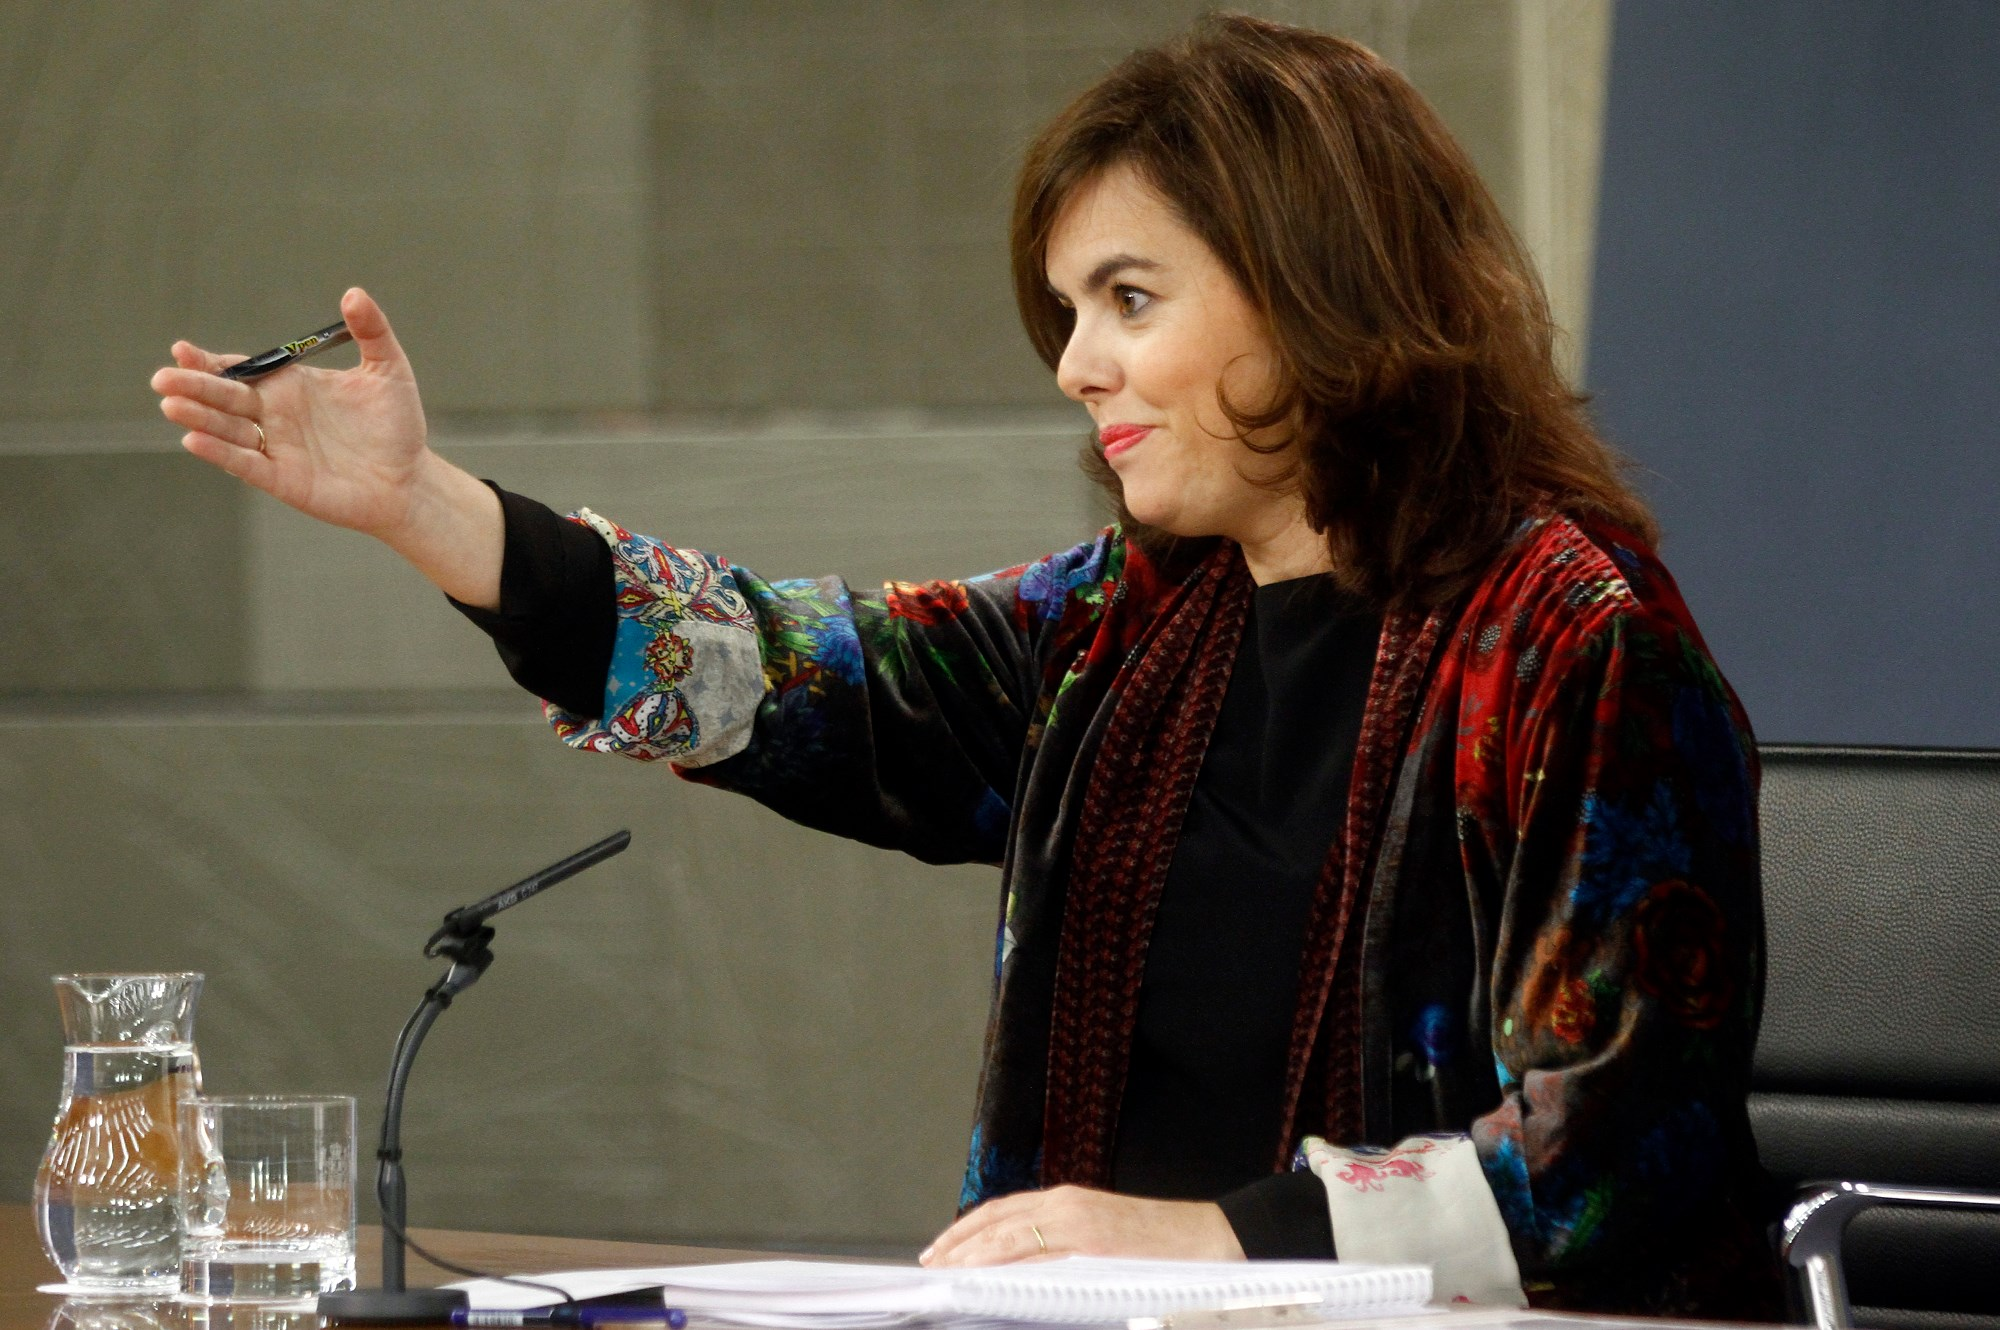 If other parties refuse to work with prime minister Mariano Rajoy, they could find his deputy prime minister, the younger and more urbane Soraya Sáenz de Santamaría more palatable. (Facebook)